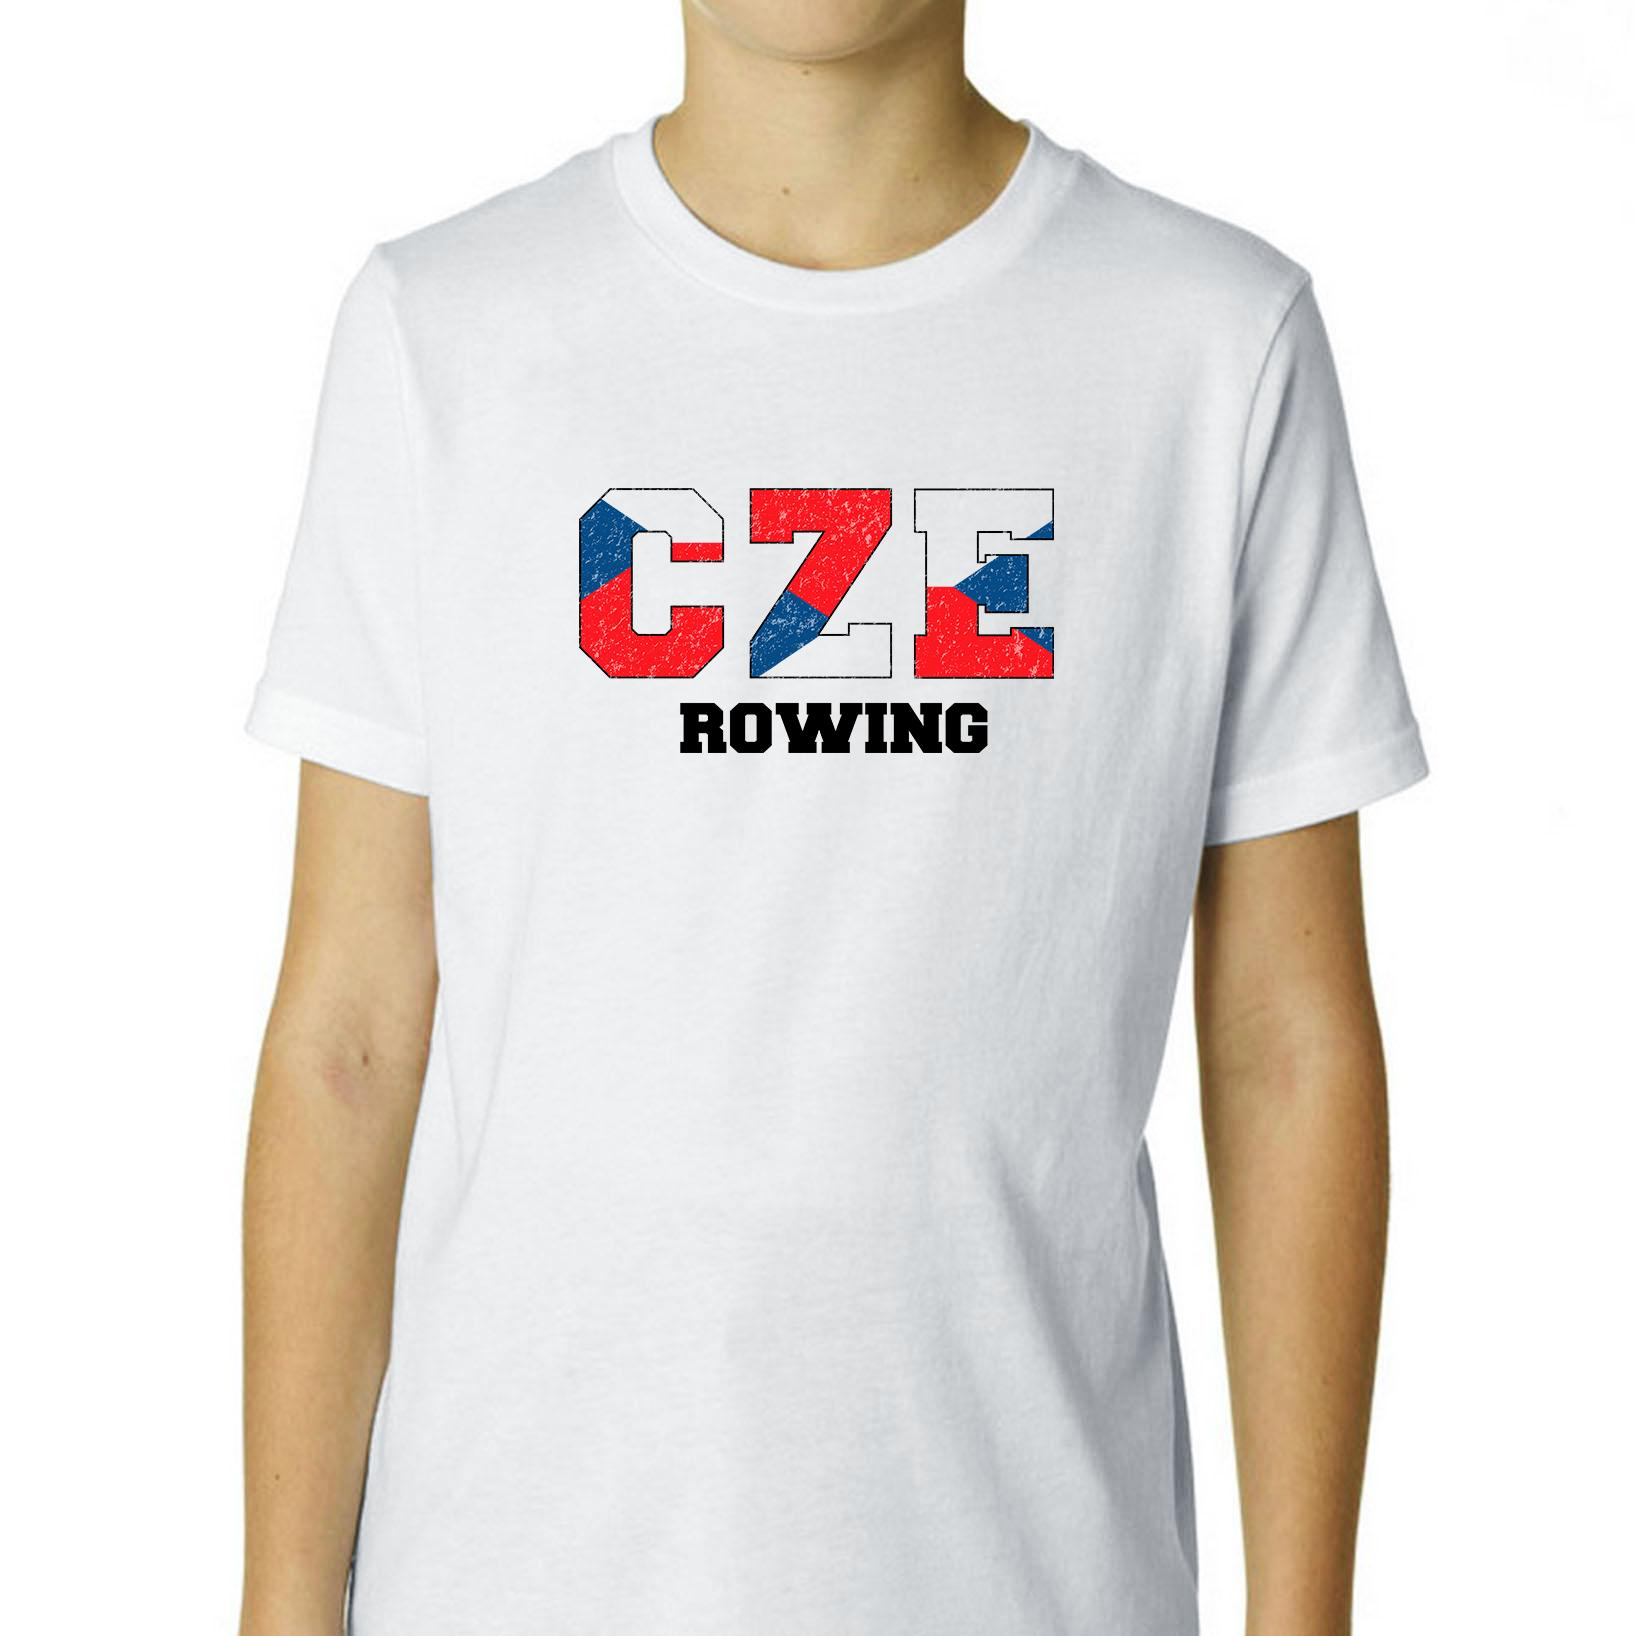 Czech Republic Rowing - Olympic Games - Rio - Flag Boy's Cotton Youth T-Shirt